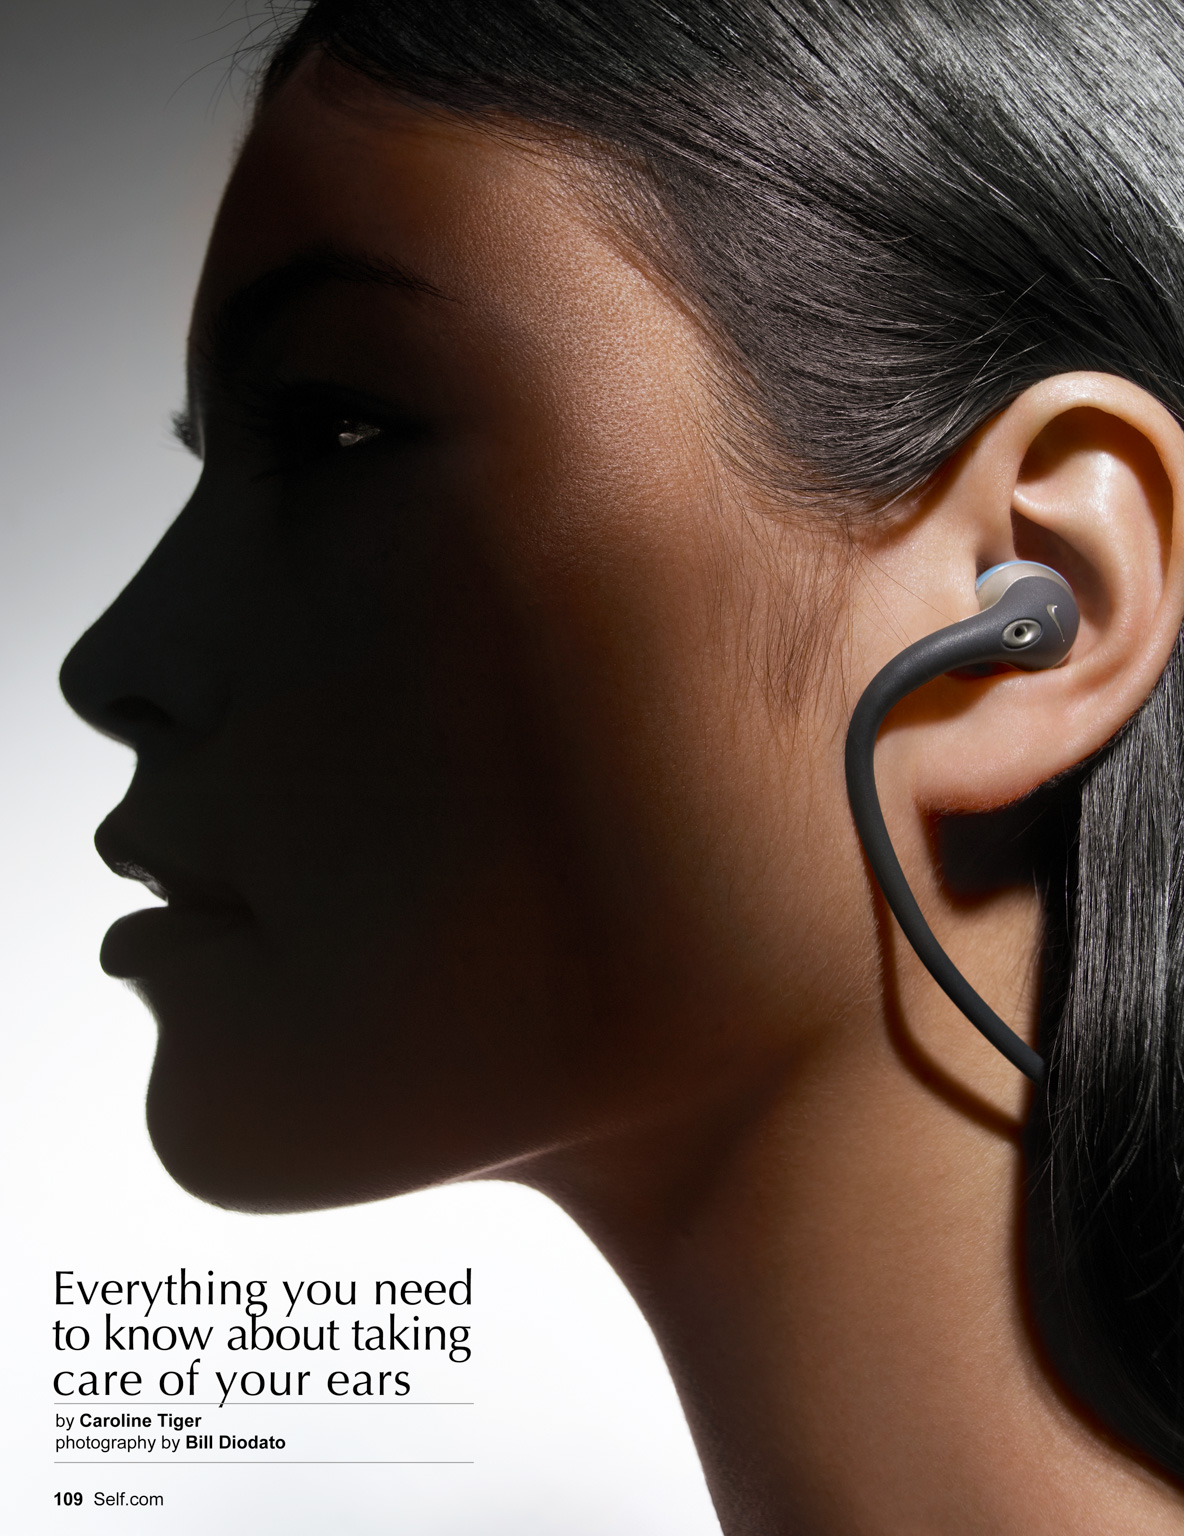 053_ear_05_2005_redesigned